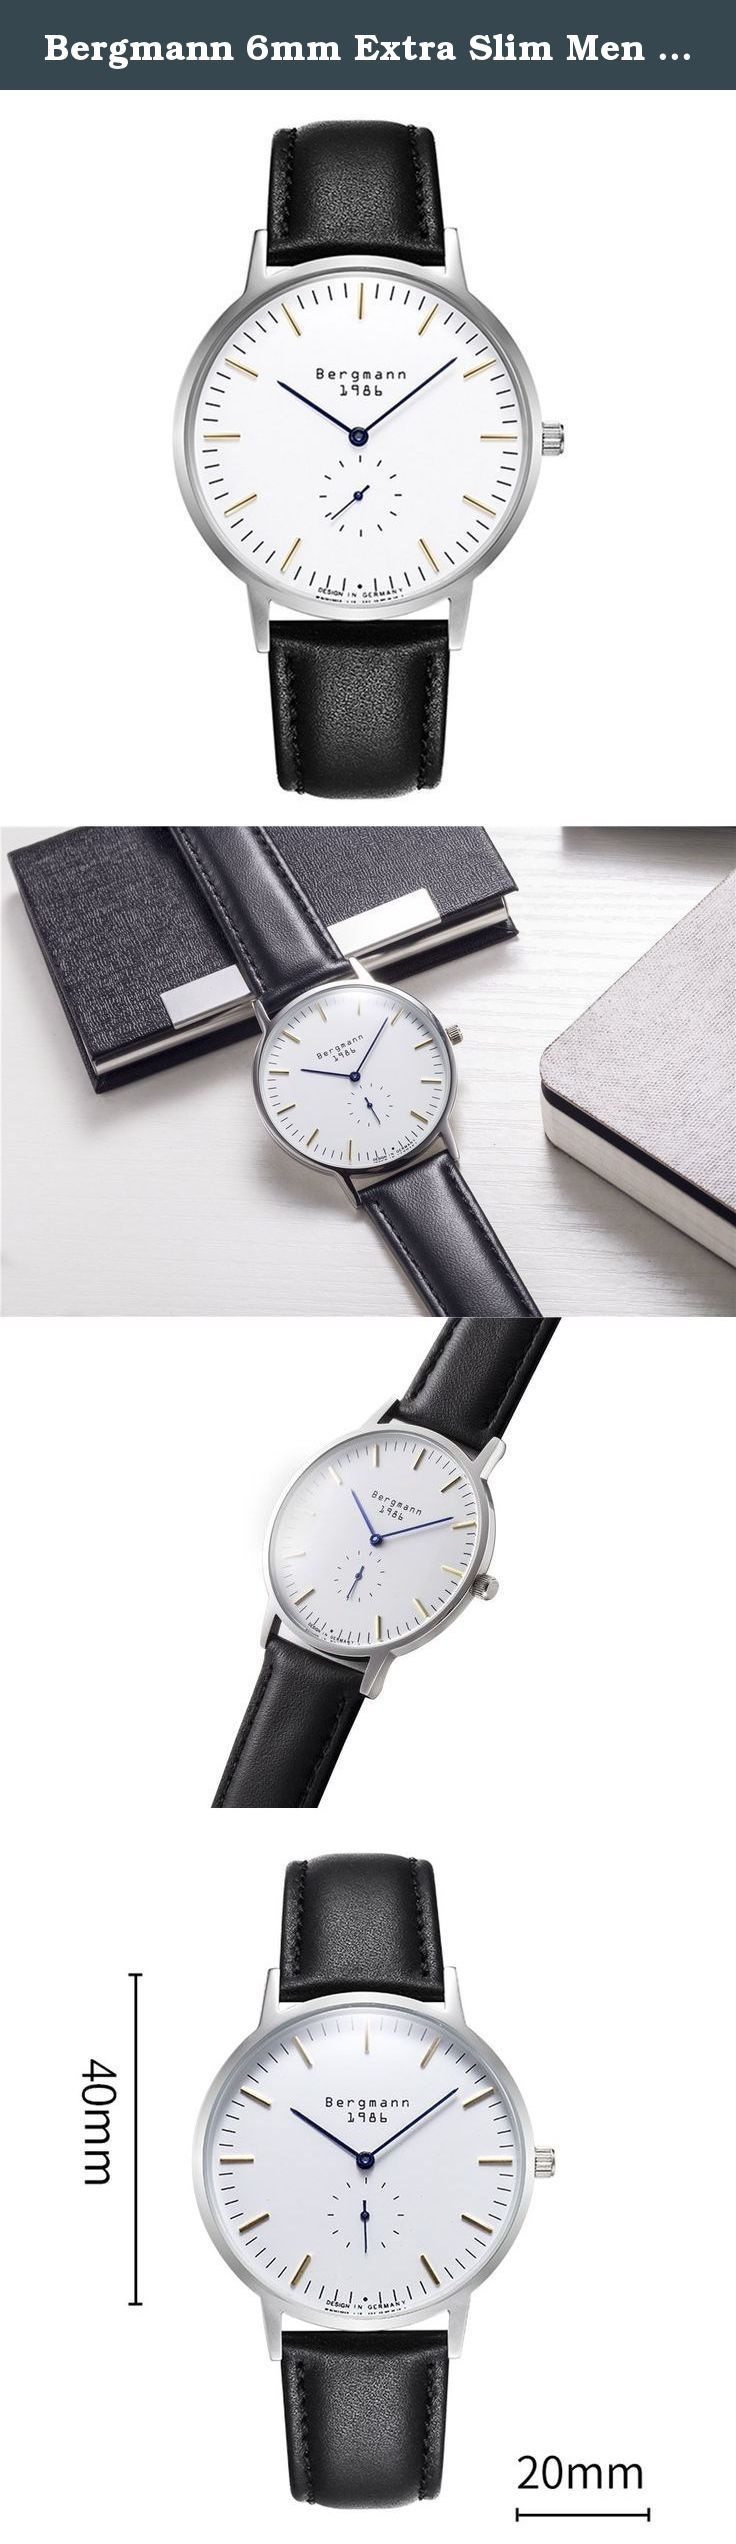 Bergmann 6mm Extra Slim Men Watch Classic Bauhaus Silver Case White Dial Casual Watches Quartz 1986. Bergmann is one of the hot selling watch brands in Germany. Started from 1933 in Schramberg, Bergmann was first well known with its vintage miner series of mechanical watch. In 1990s, Bergmann worked with Jens Richter, a european Bauhaus style designer, to engaged in Bergmann watches production. As time passed, now Bergmann had developed a number of Bauhaus style watches collections...